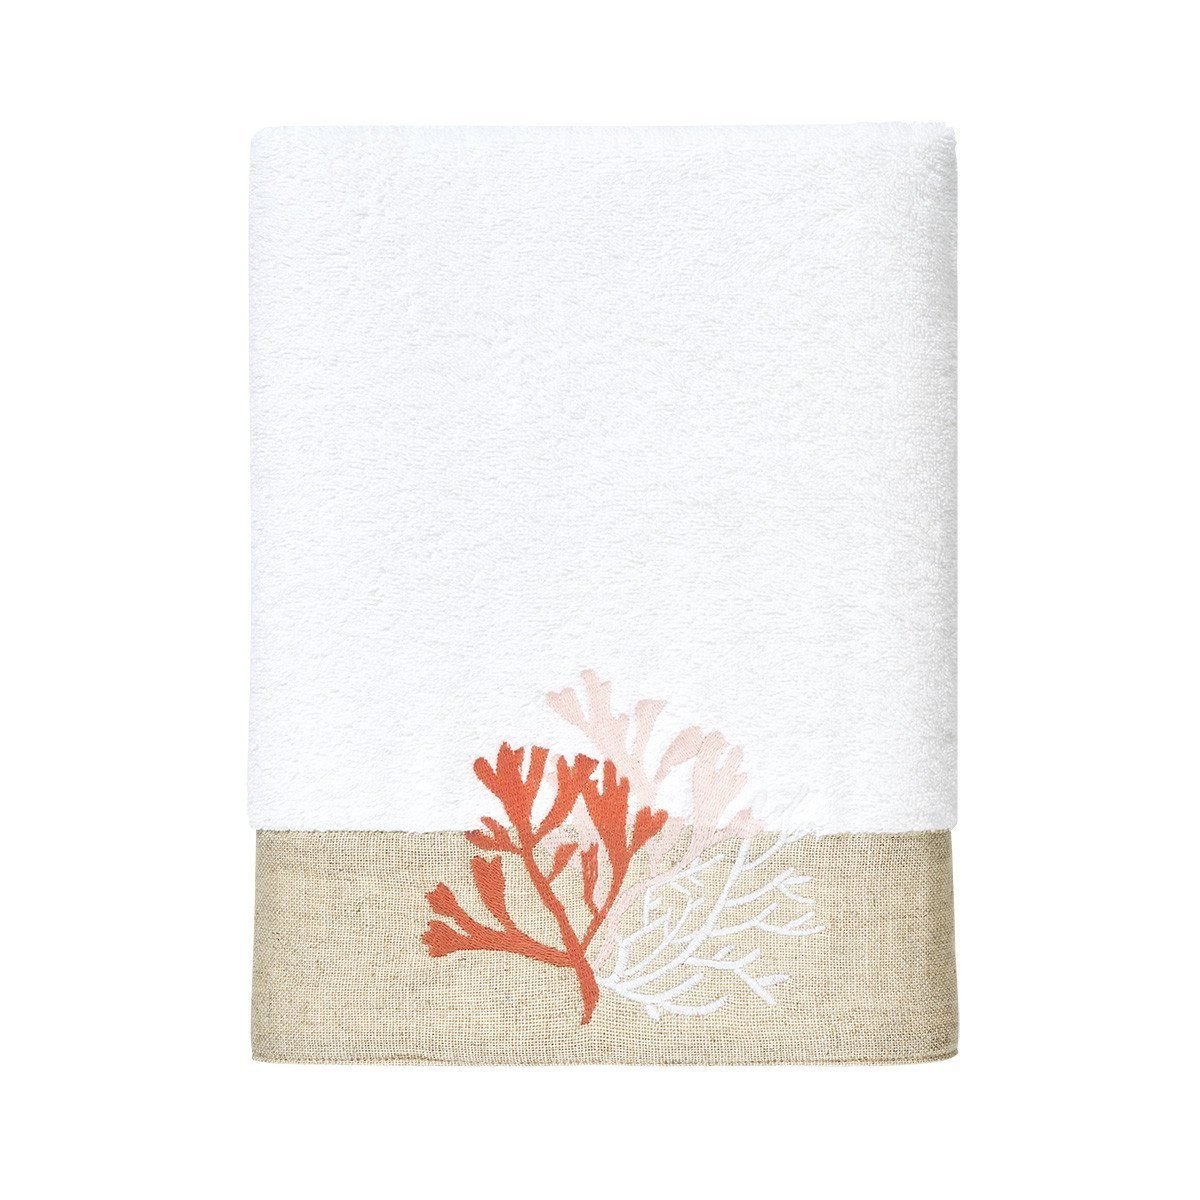 Calypso Bath Towels by Yves Delorme